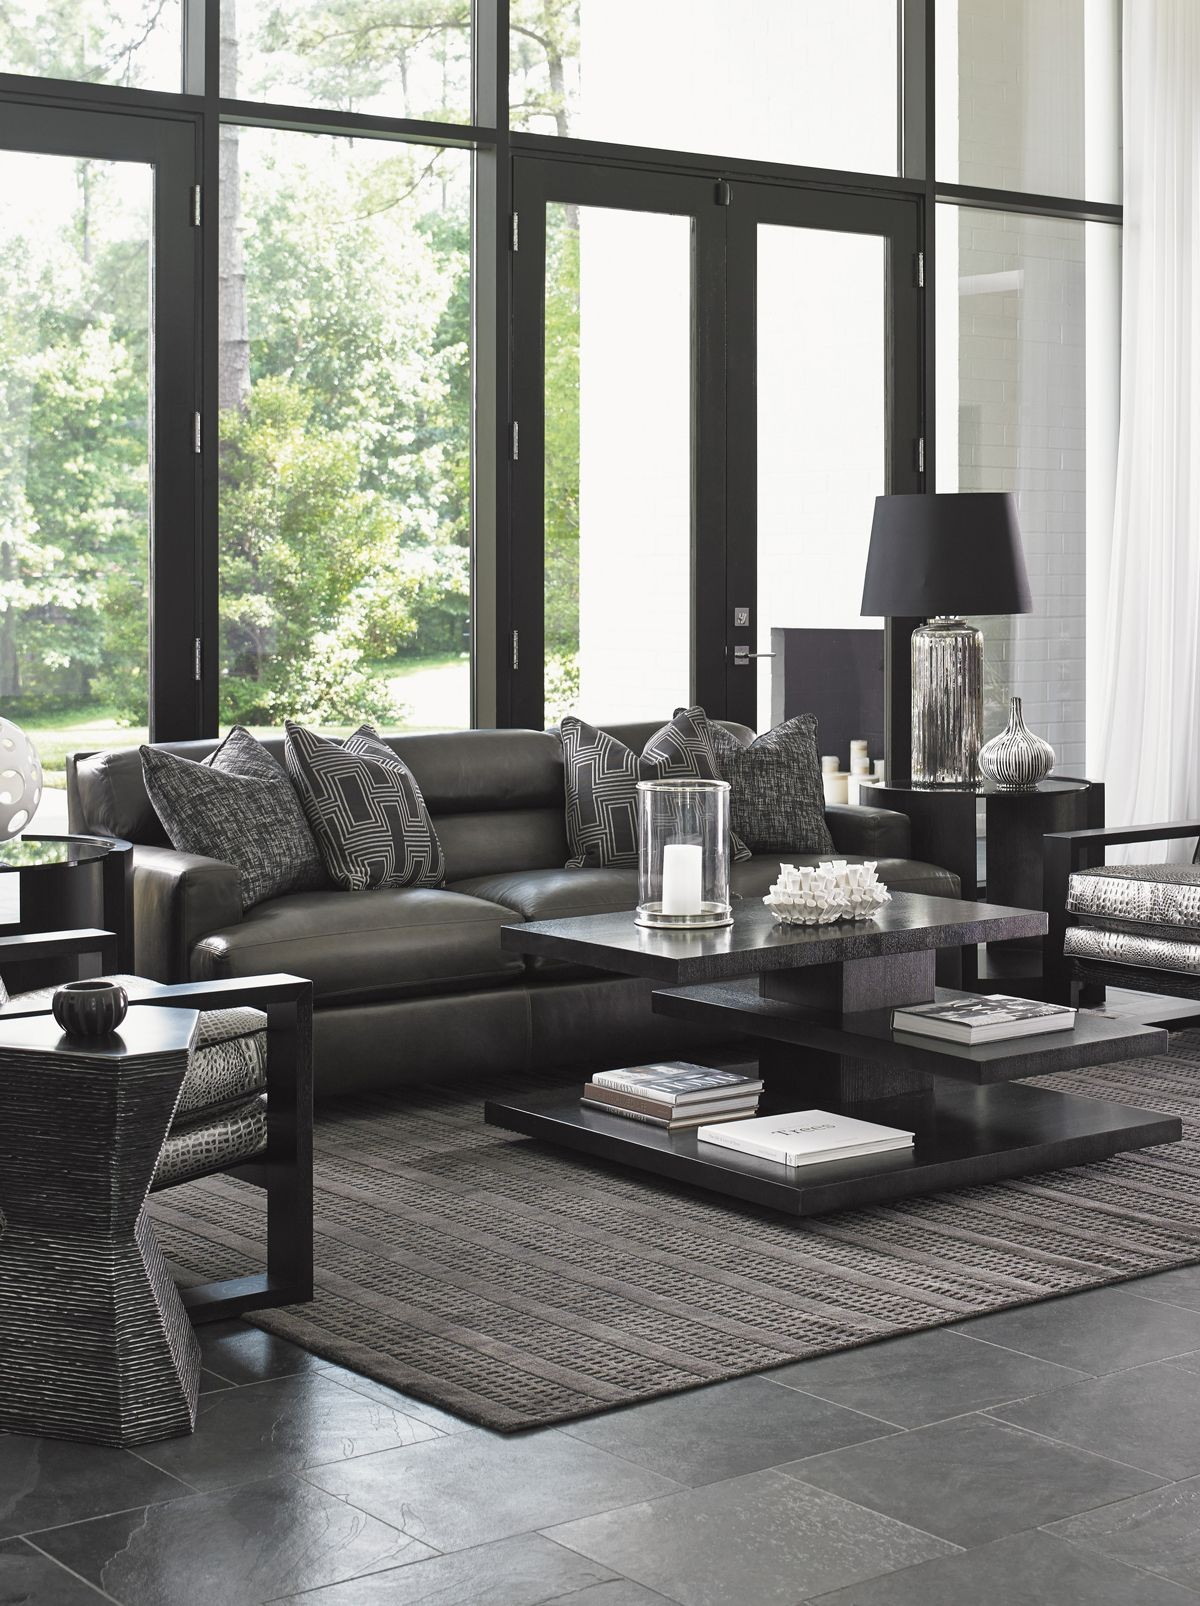 Carrera Toscana Leather Living Room Set From Lexington